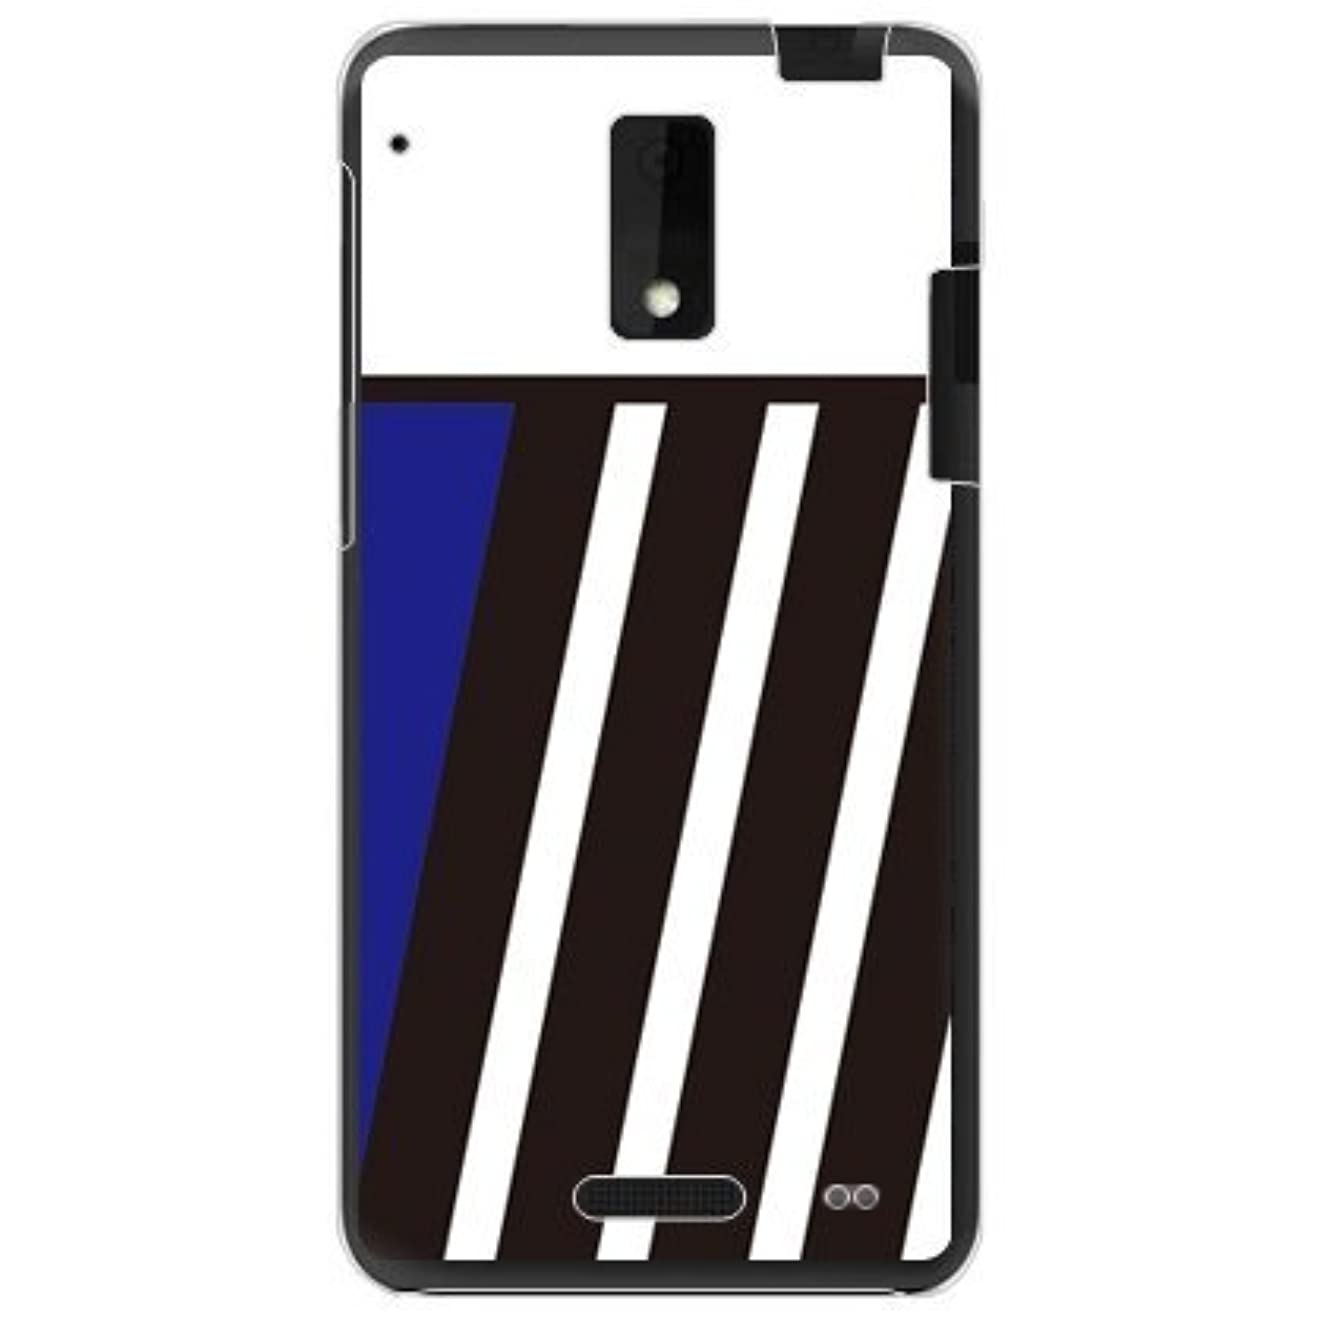 平衡政府ライセンスSECOND SKIN BLUE & BLACK ブルー (クリア) design by ROTM/for HTC J ISW13HT/au AHTJ13-PCCL-202-Y246